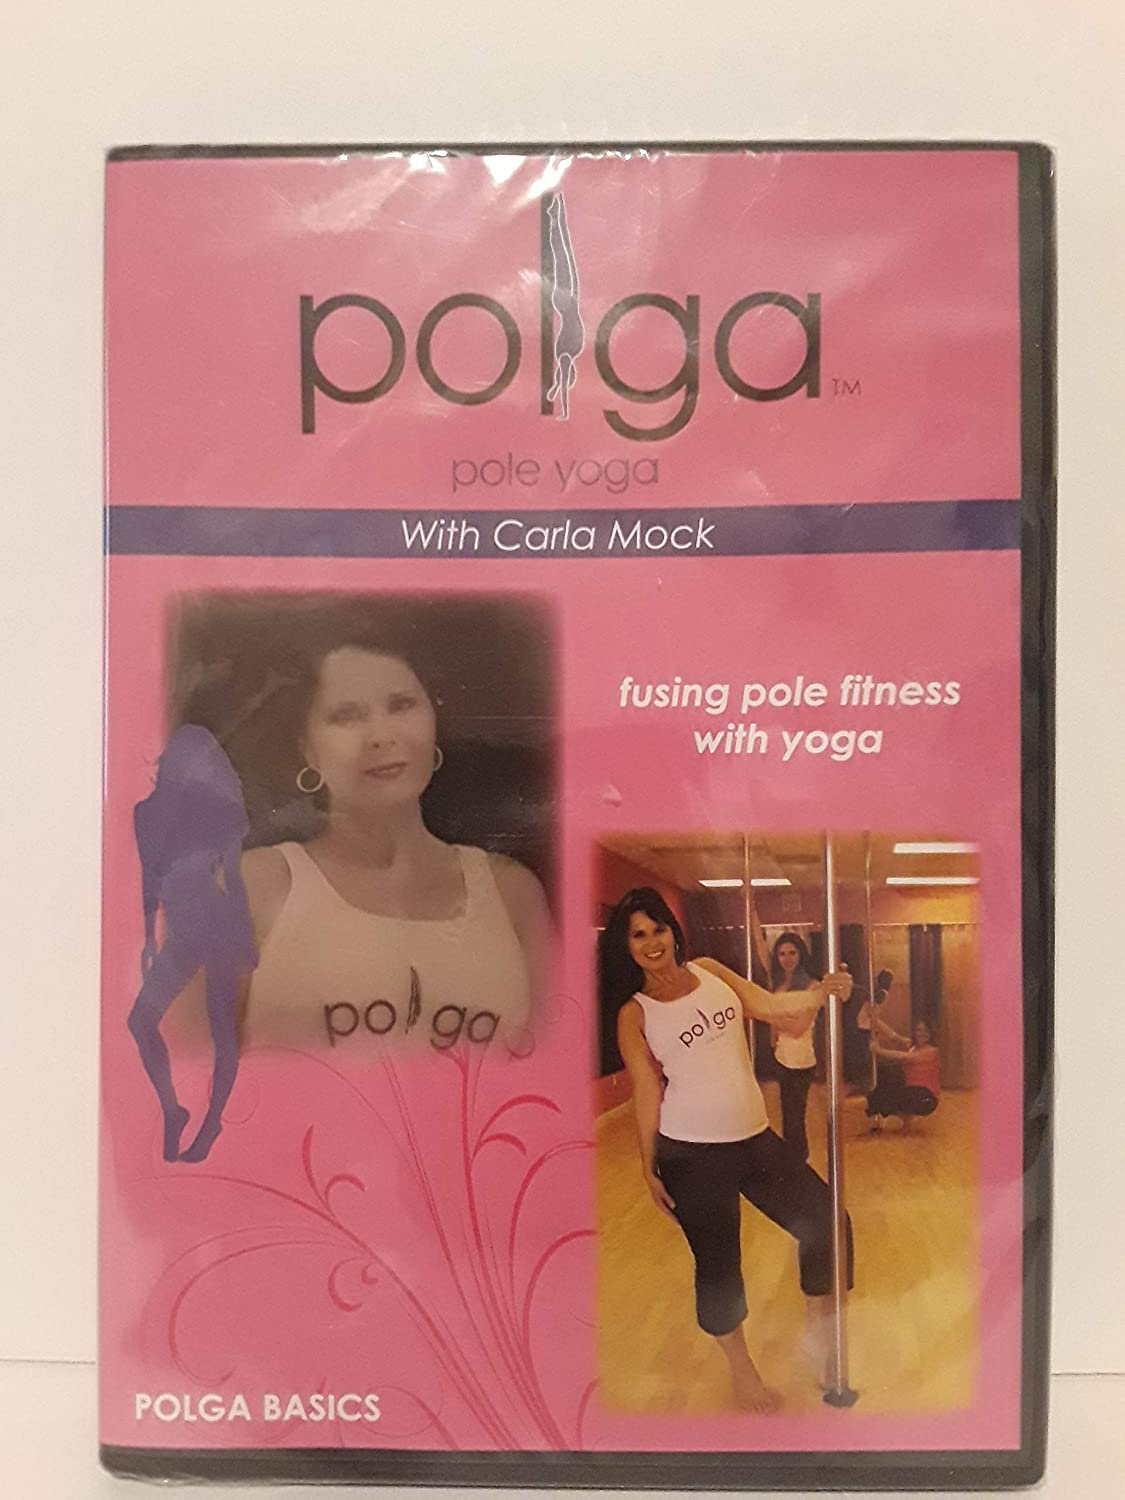 Amazon.com : Polga (Pole Yoga) DVD : Yoga Equipment : Sports ...